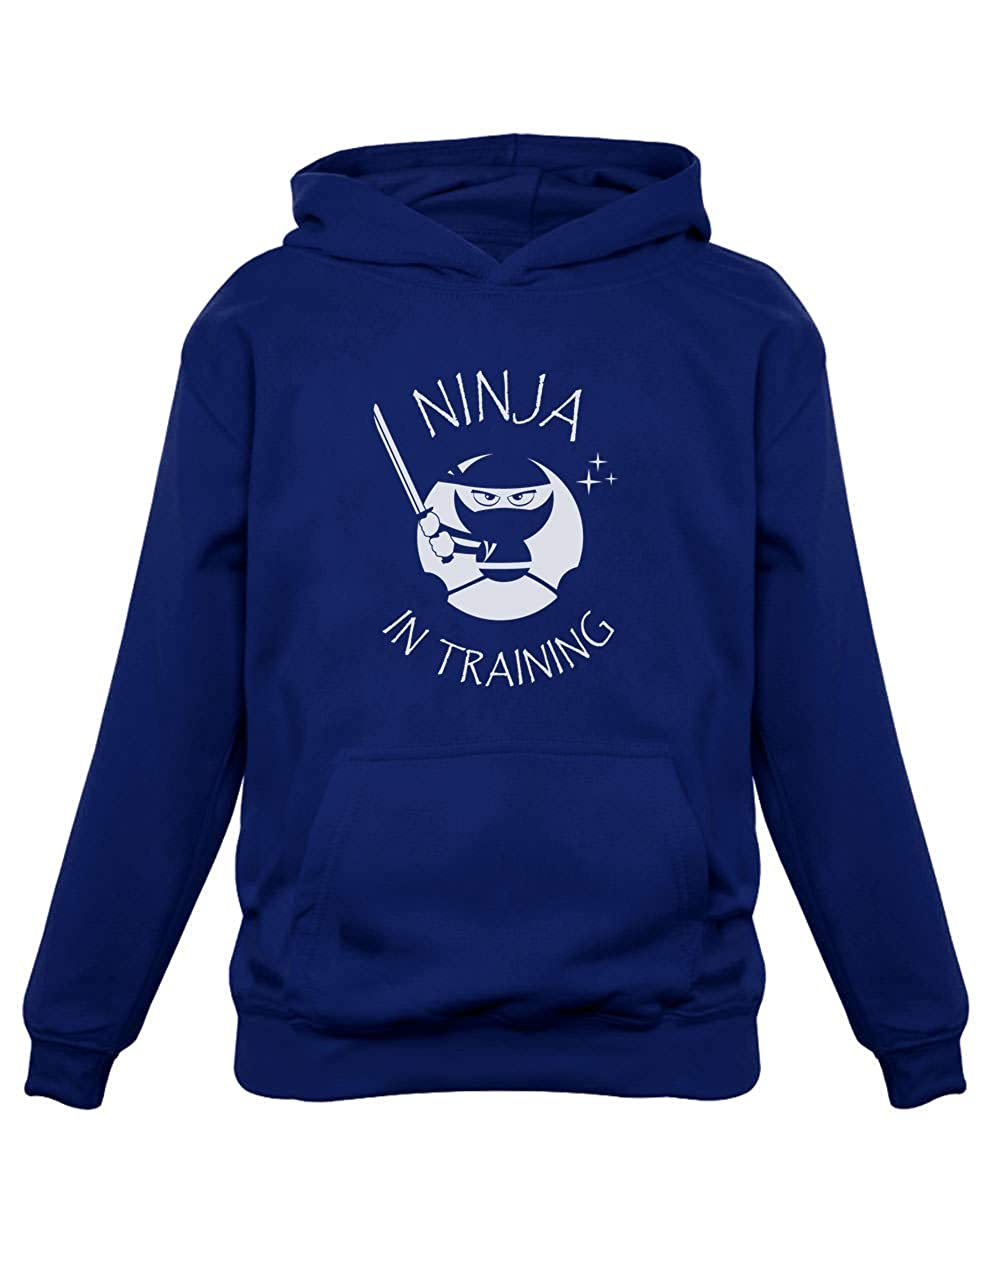 Sudadera con Capucha para niños - Ninja In Training For Kids